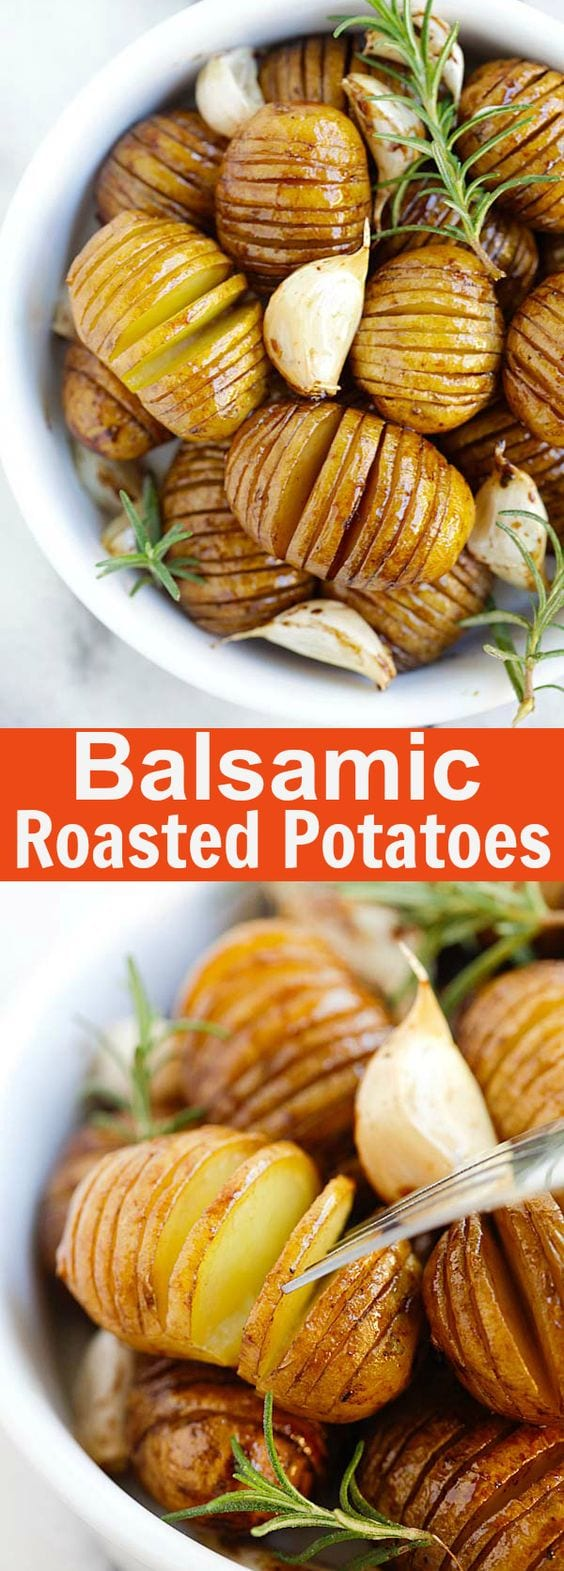 Balsamic Roasted Potatoes – crazy delicious hasselback roasted potatoes with honey balsamic and garlic. Best potato side dish ever | rasamalaysia.com